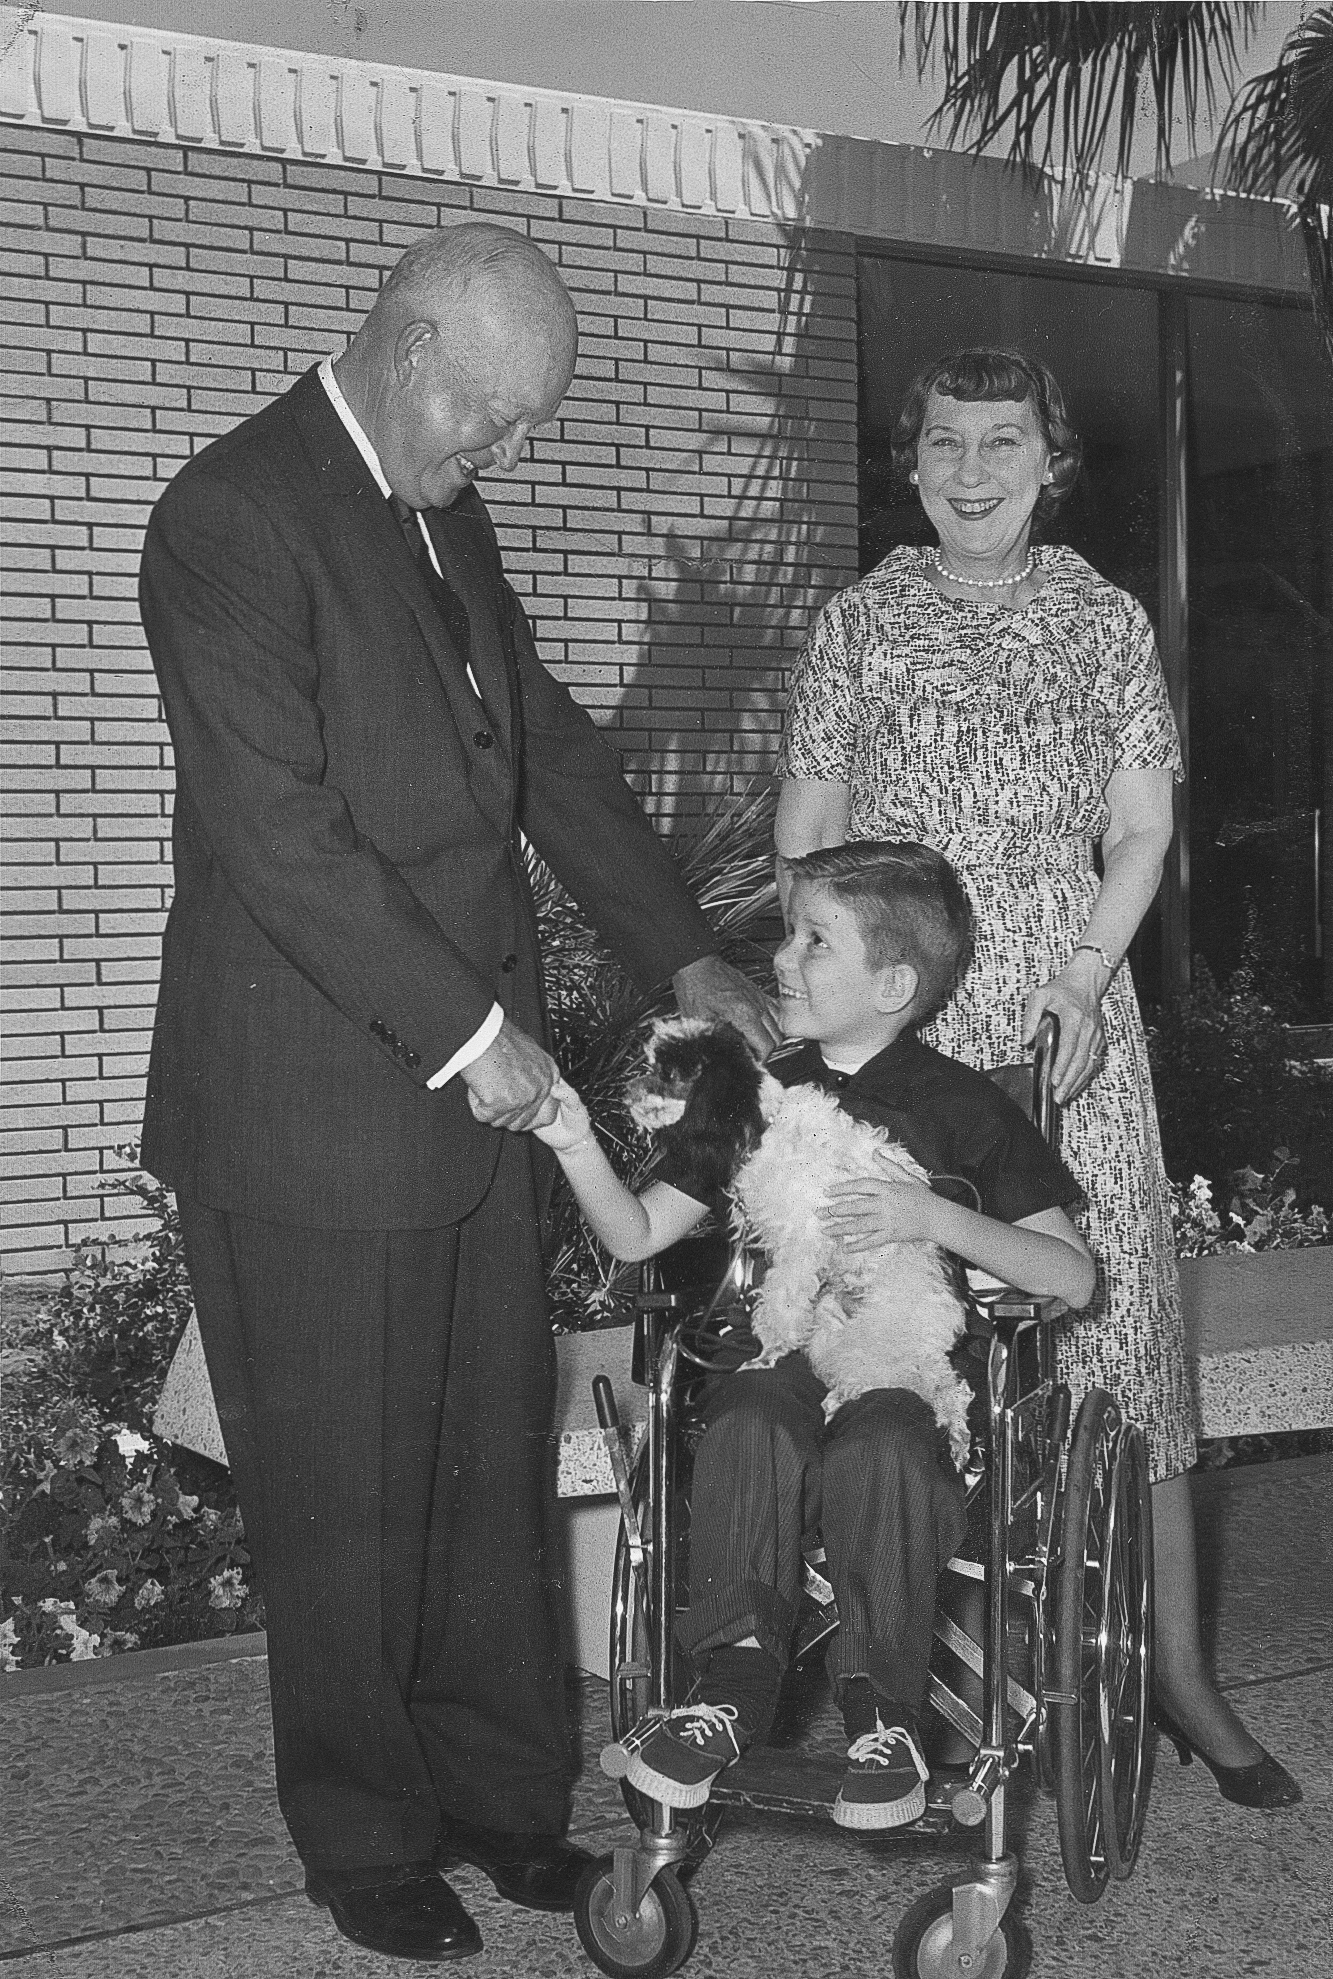 5-14 Dwight and Mamie Eisenhower with bo